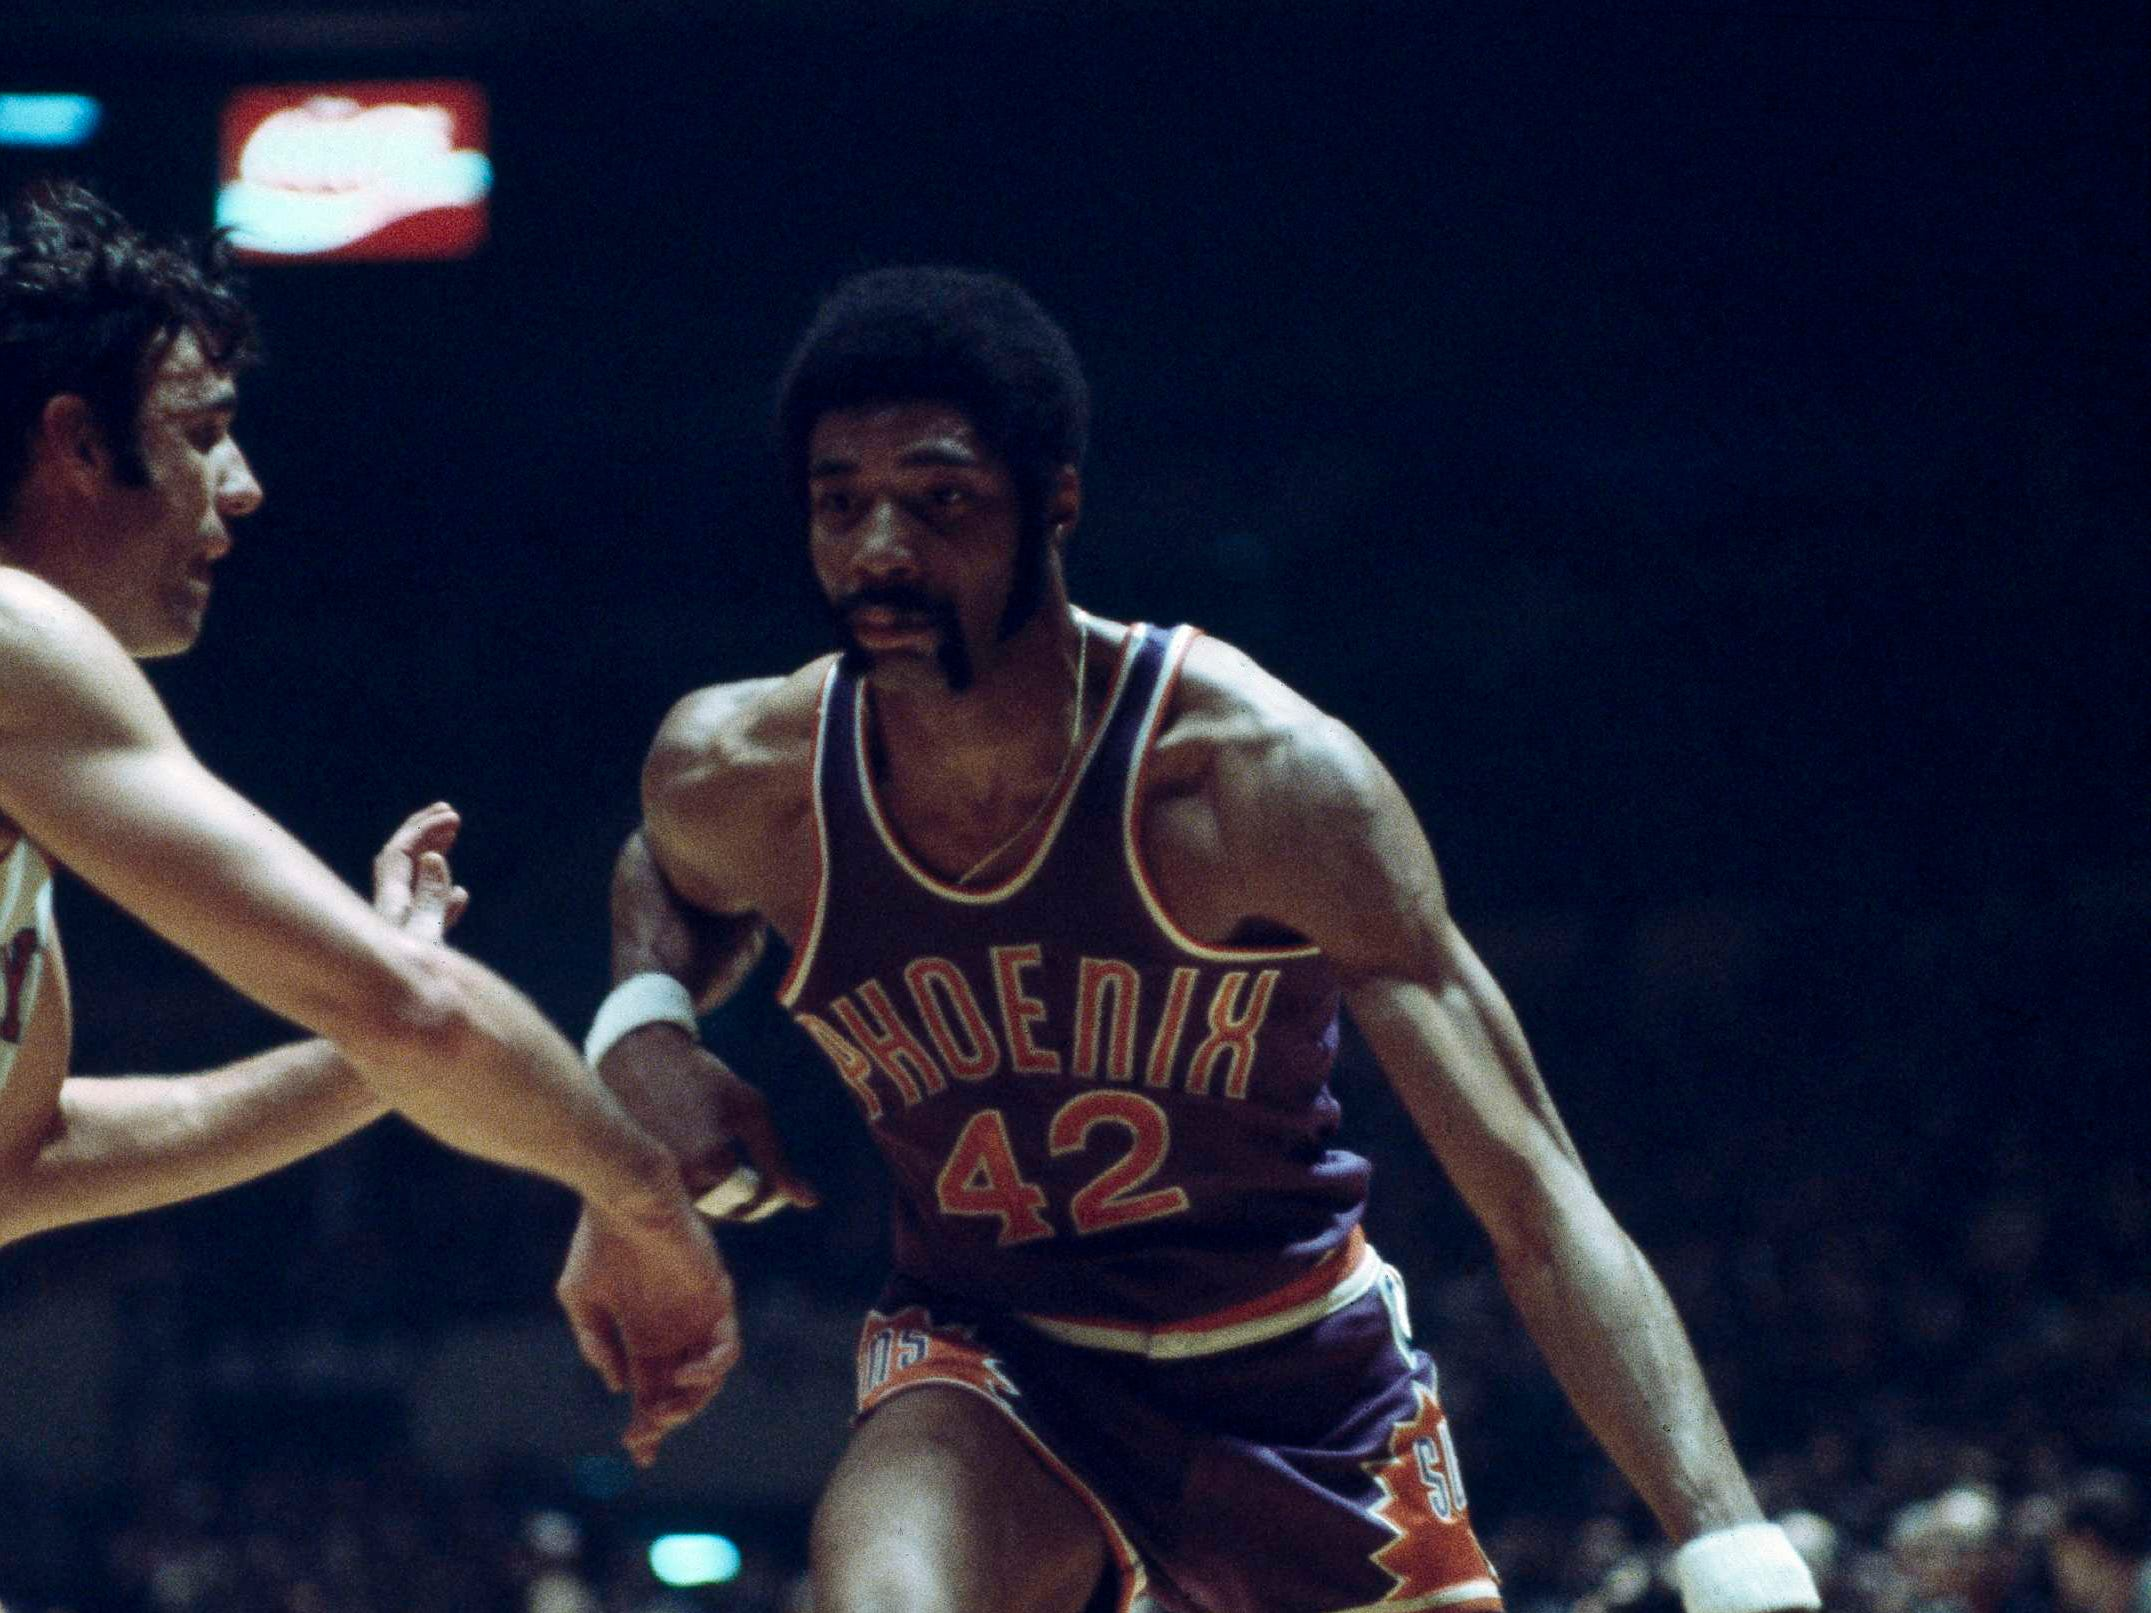 1969-70 | Suns MVP: Connie Hawkins (seen in 1971). Newcomers Hawkins, Silas and Neal Walk helped the young Suns improve by 23 wins. Hawkins gets the nod here in his best NBA season.